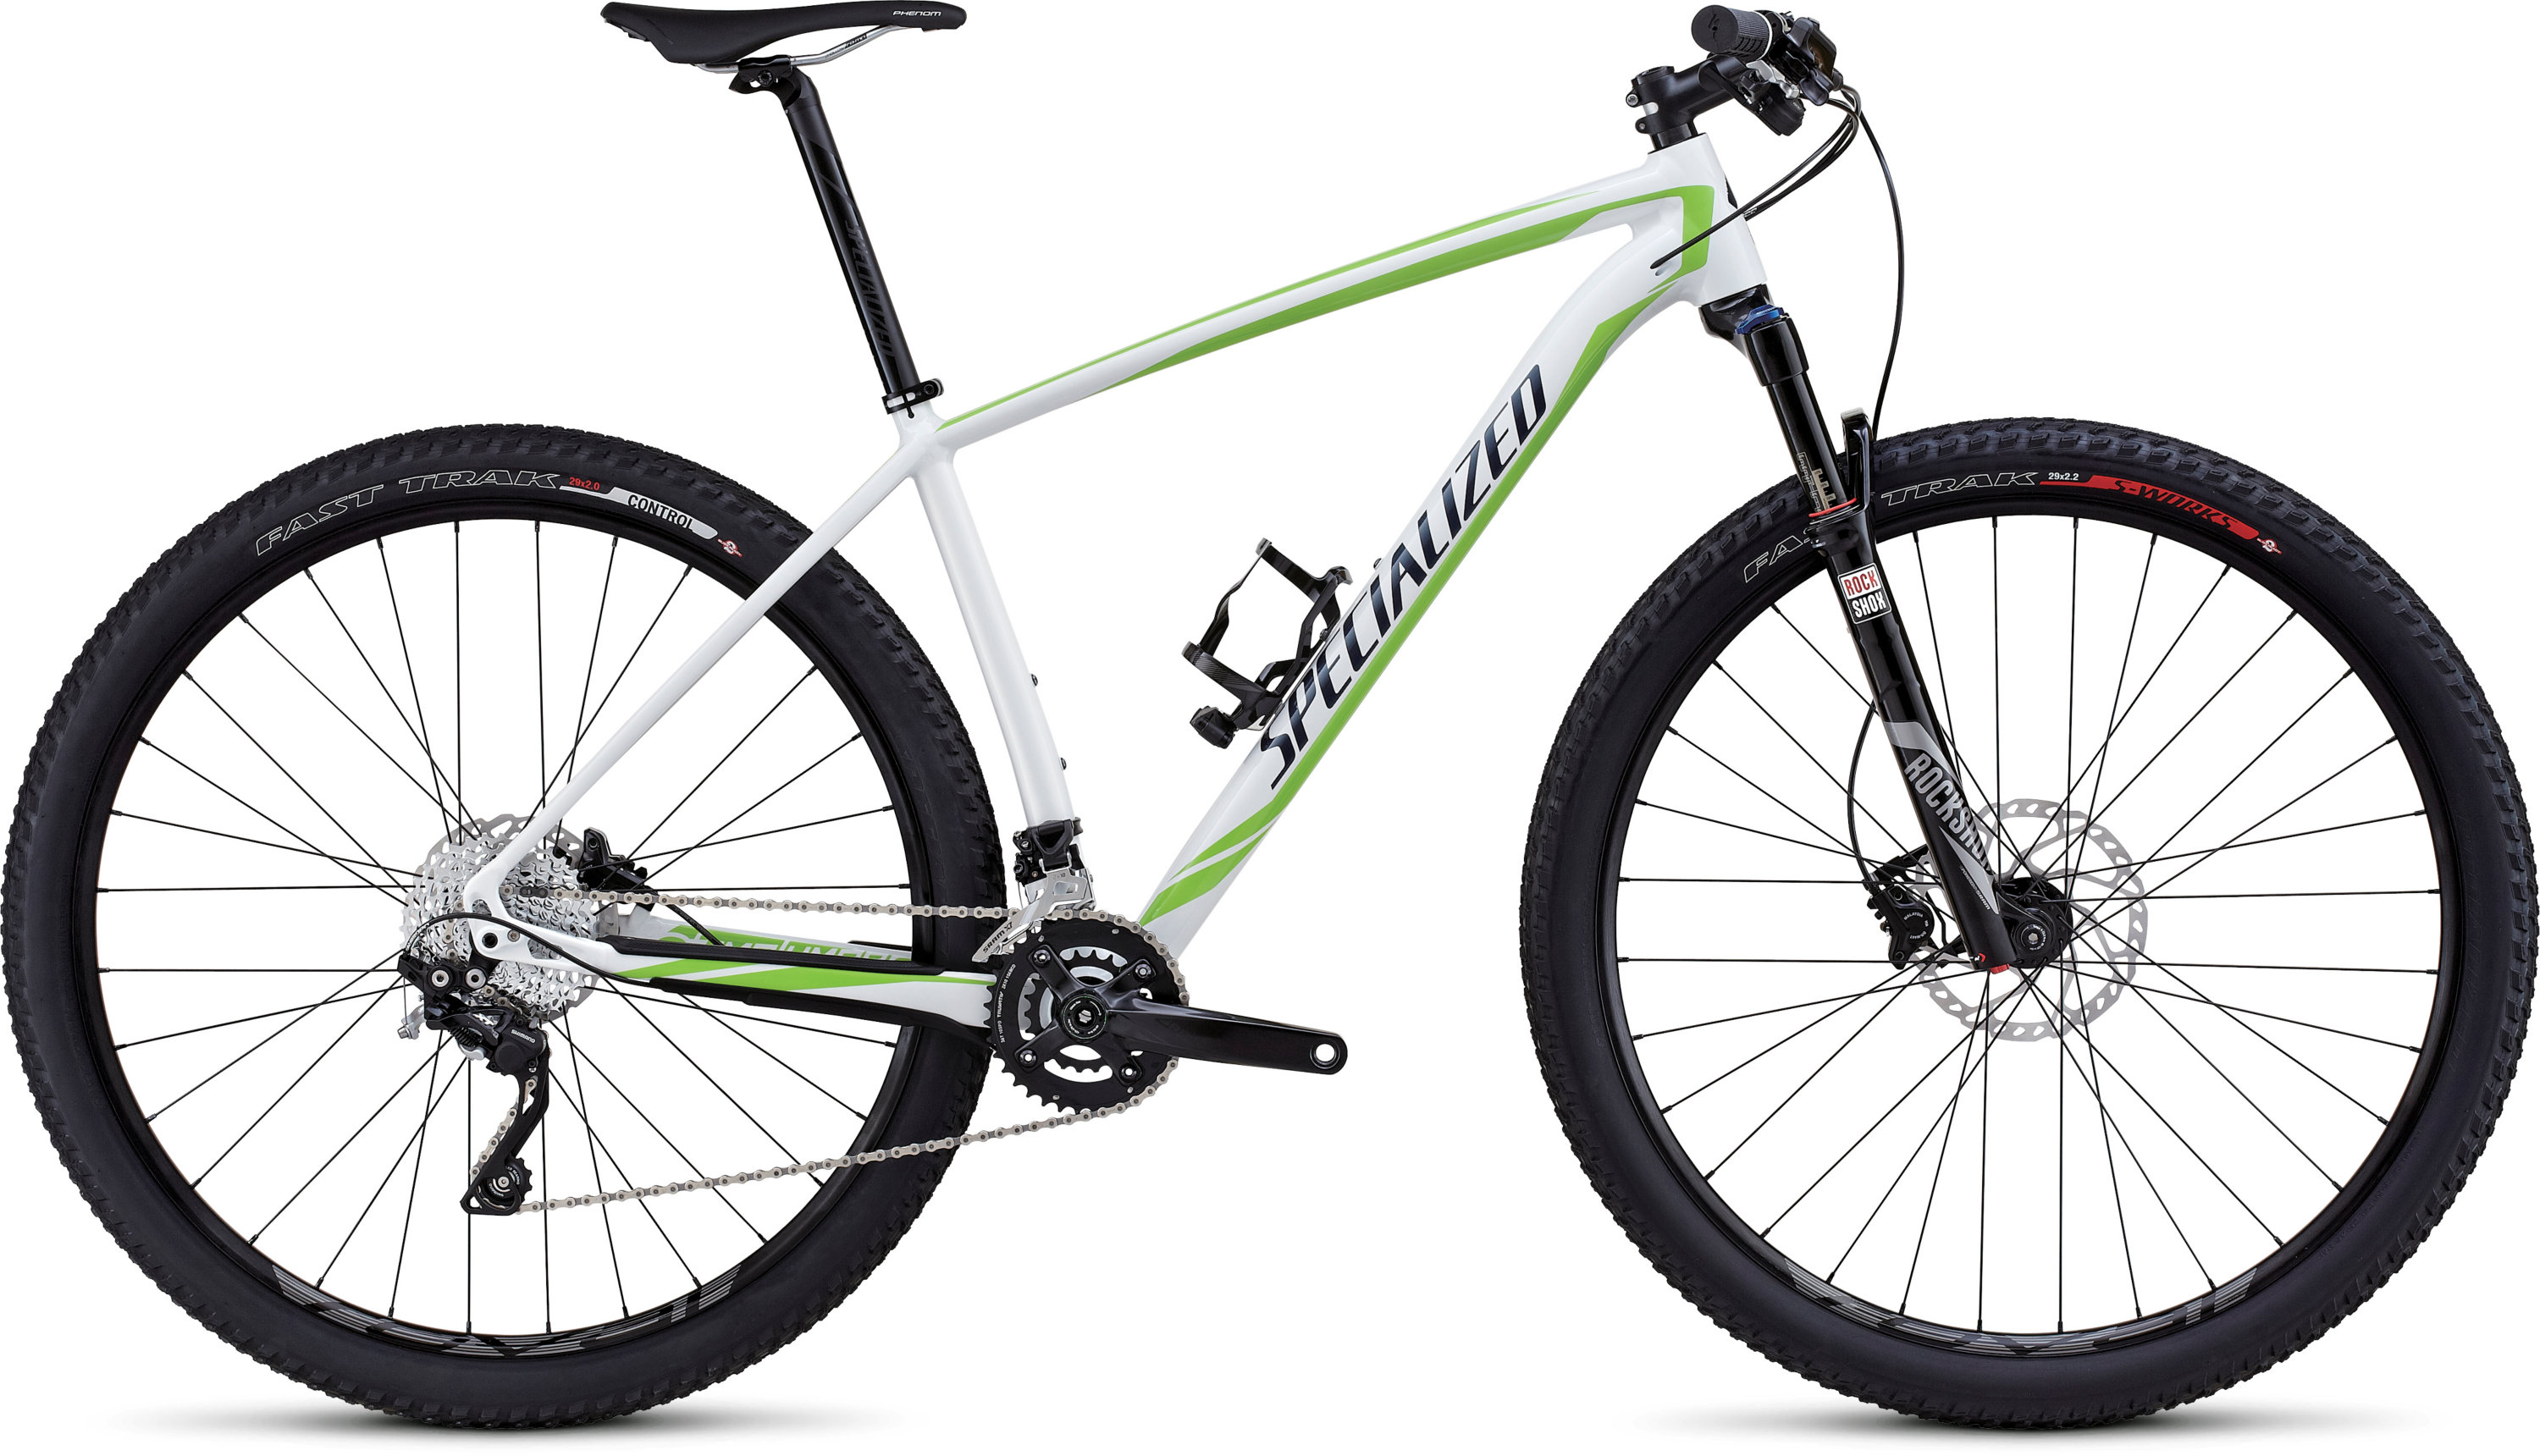 SPECIALIZED SJ HT COMP 29 WHT/MONGRN/NVY S - Bikedreams & Dustbikes